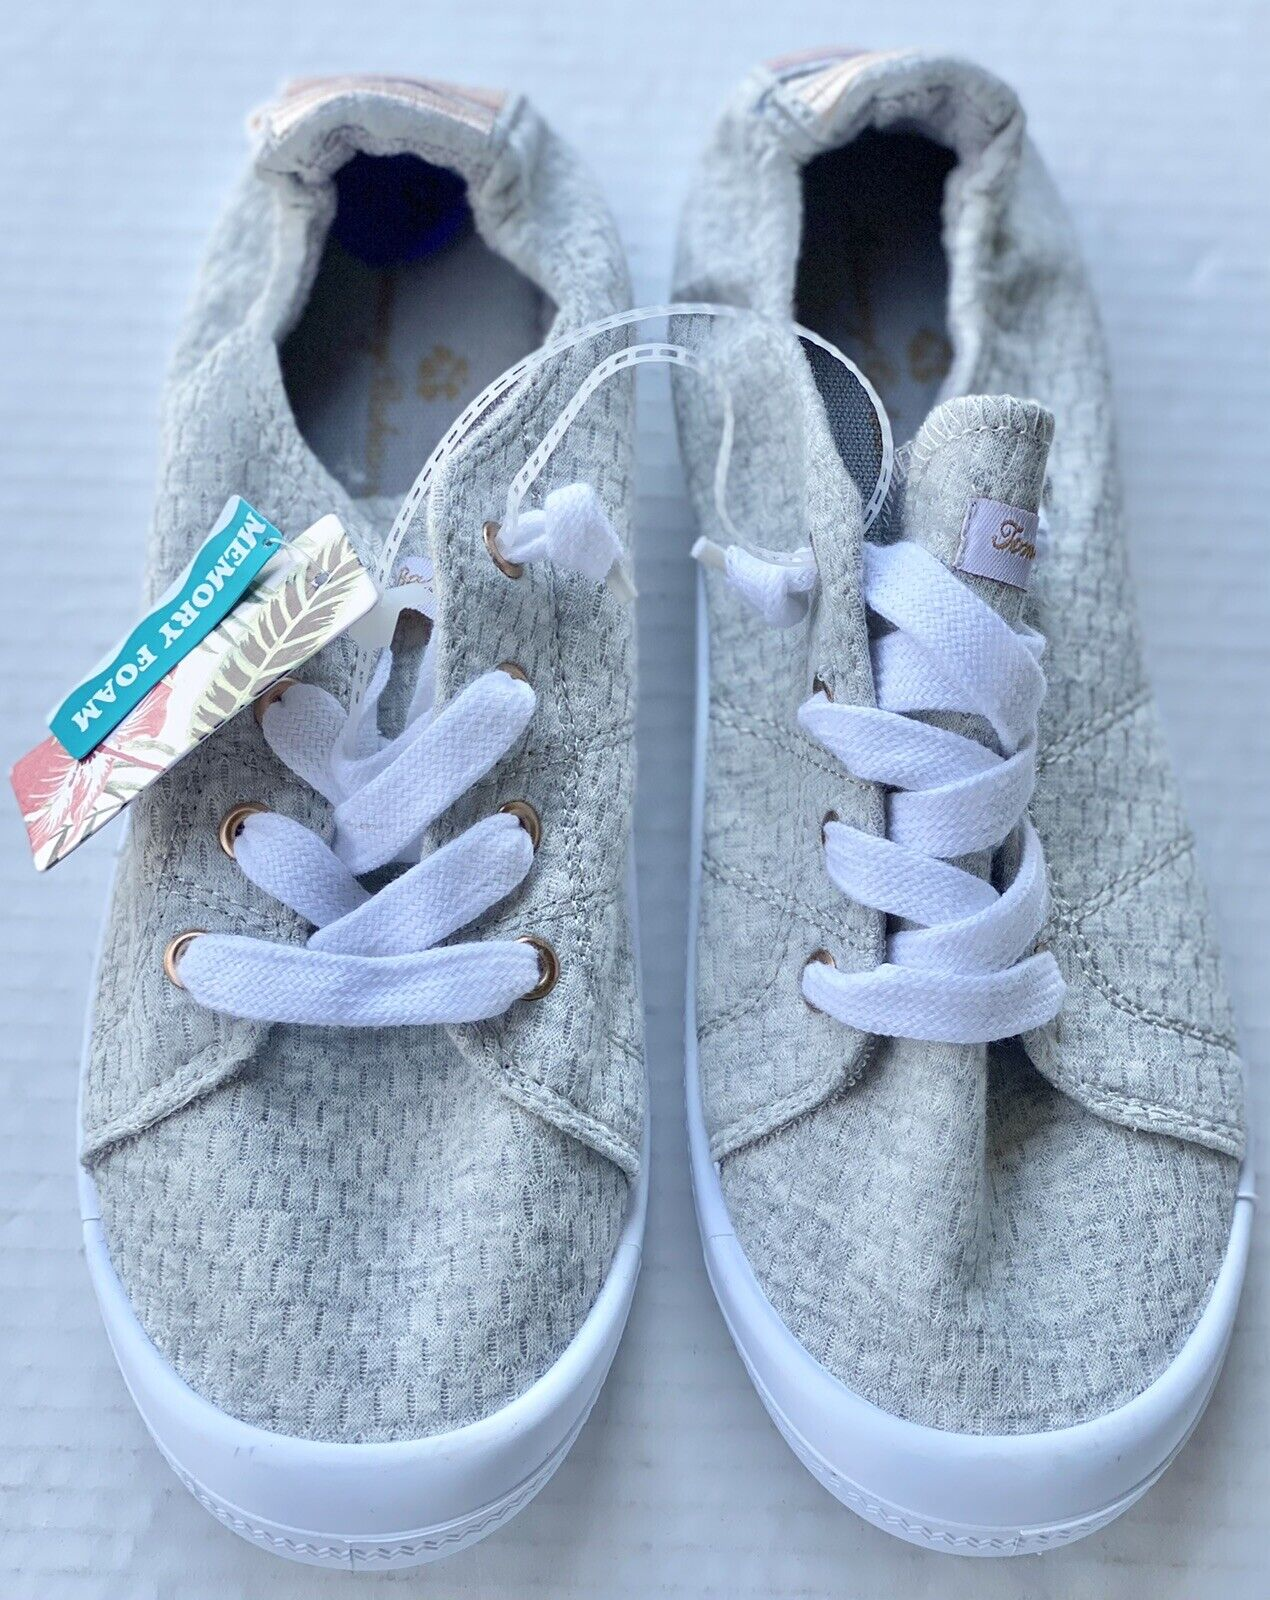 Tommy Bahama Dots Right Women's Casual Sneakers Slip Ons Gray/White Size 8.5